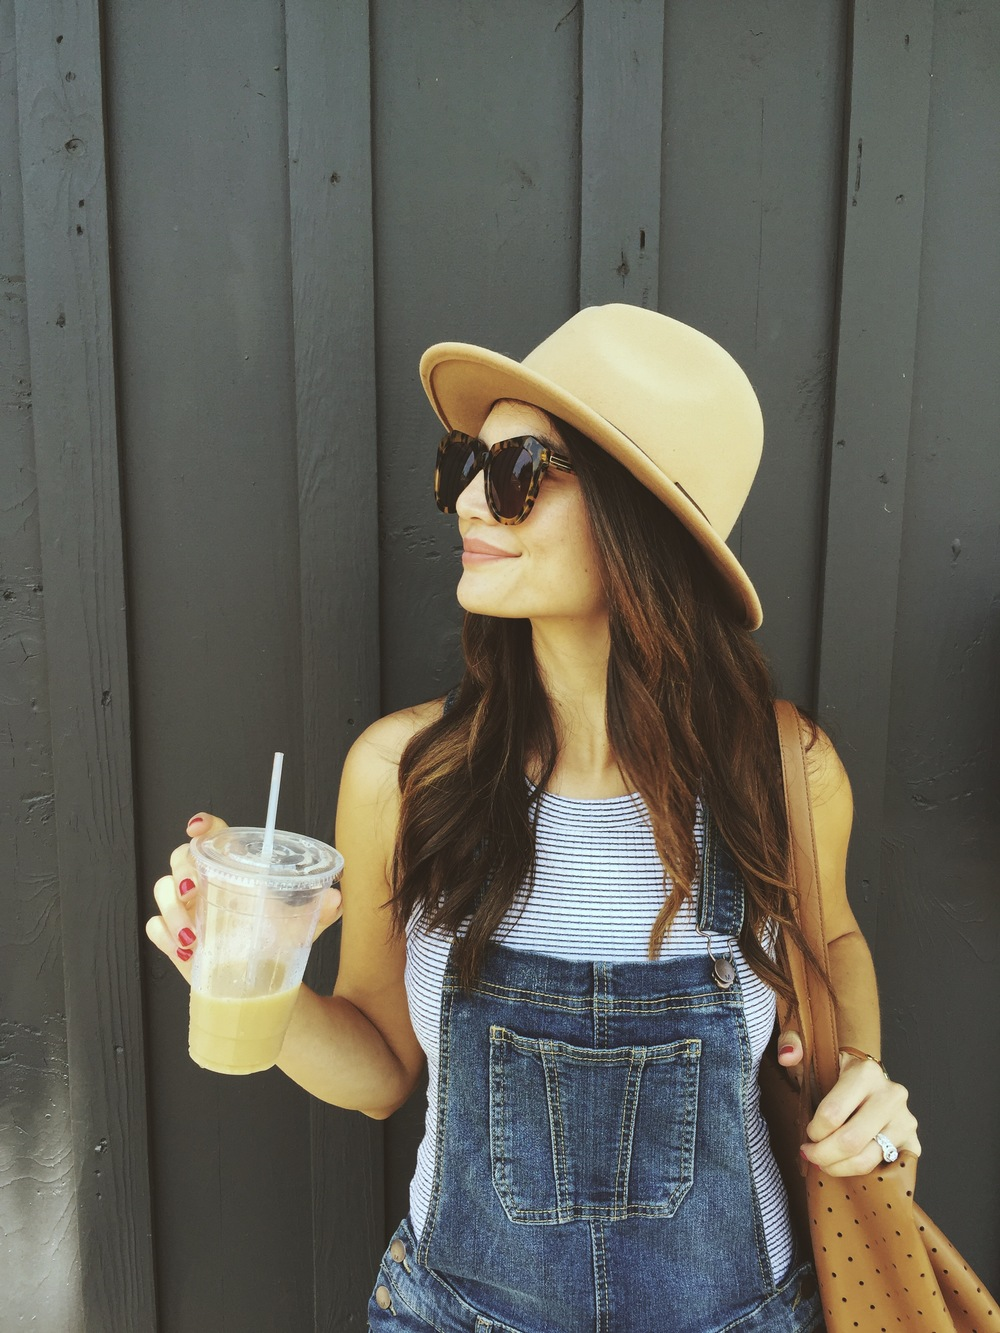 Overalls: Target. Shirt: Zara. Bag: similar  here . Hat: Urban Outfitters, old. Sunglasses:  Karen Walker .